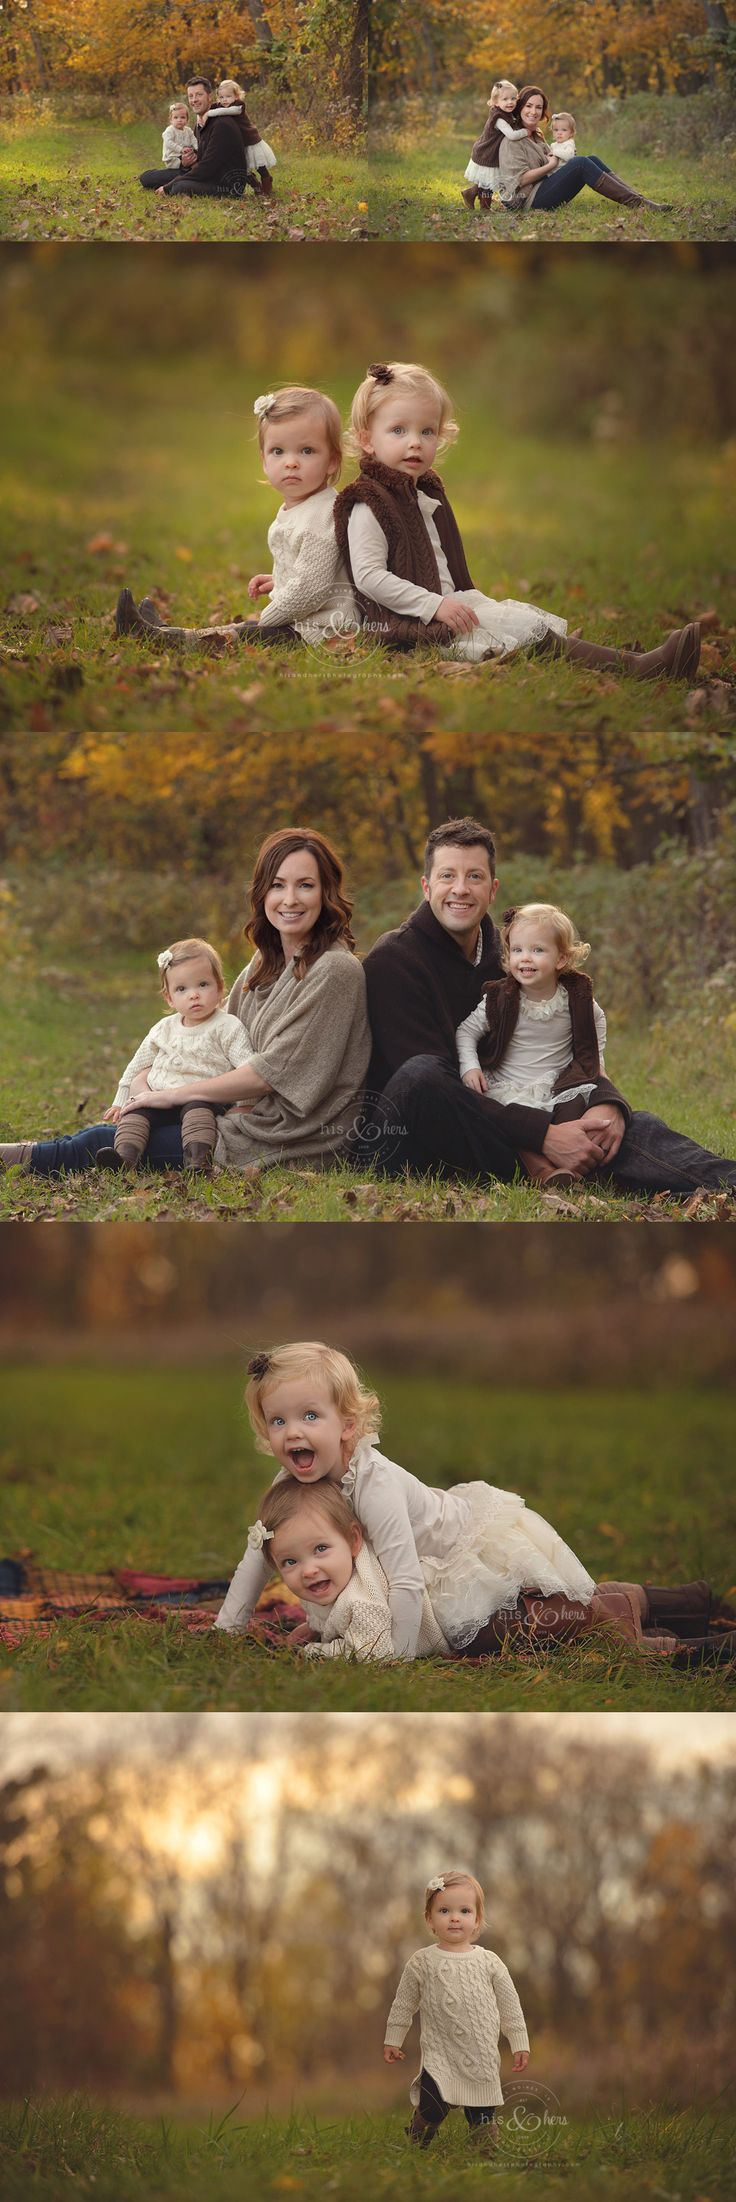 Outdoor Portrait Of A: 25+ Best Ideas About Outdoor Family Portraits On Pinterest